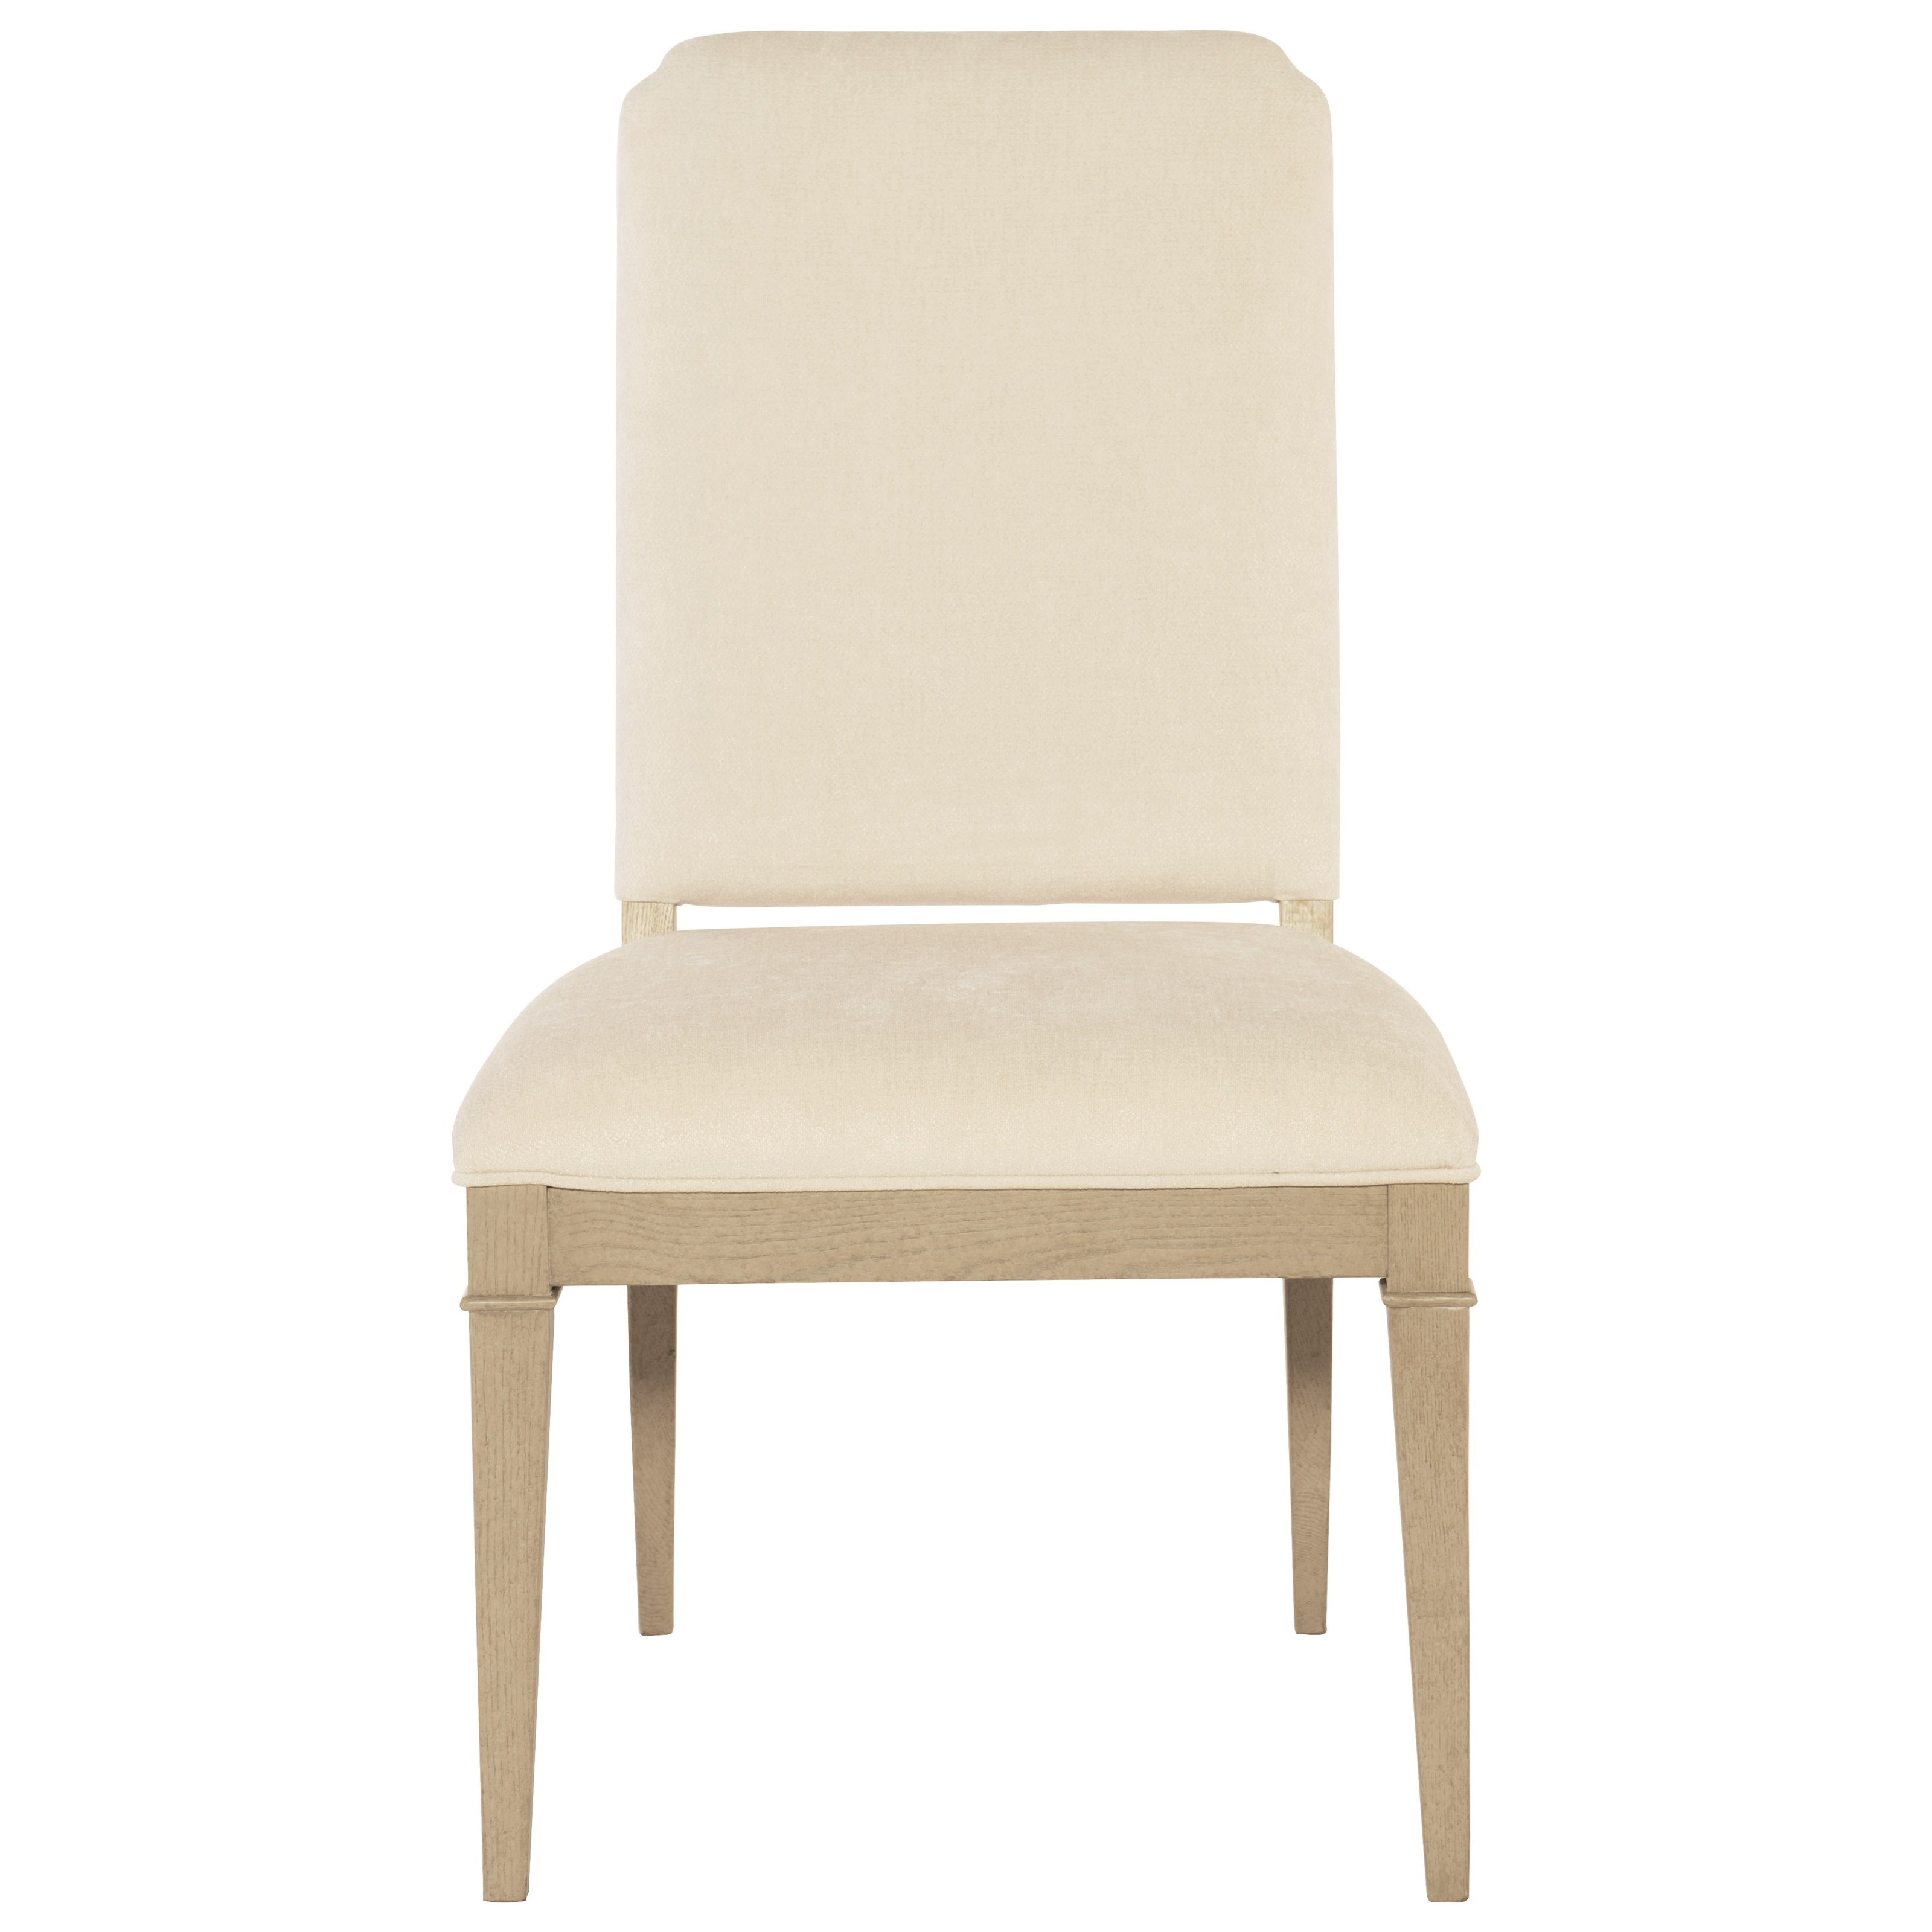 Bernhardt Savoy Place Customizable Upholstered Side Chair  : products2Fbernhardt2Fcolor2Fsavoy20place 1134168147371 x41 b1 from www.reedsfurniture.com size 3200 x 3200 jpeg 497kB